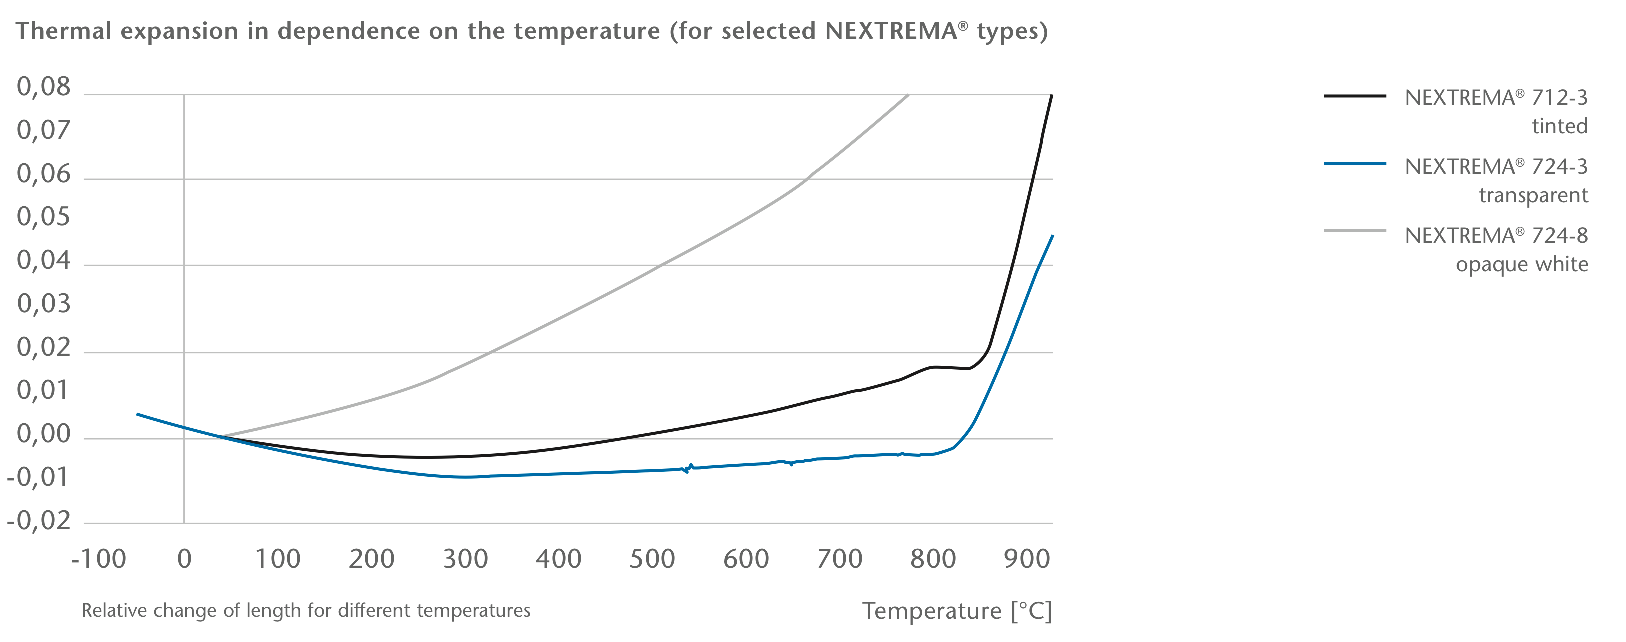 Coefficient of thermal expansion of NEXTREMA® glass-ceramics